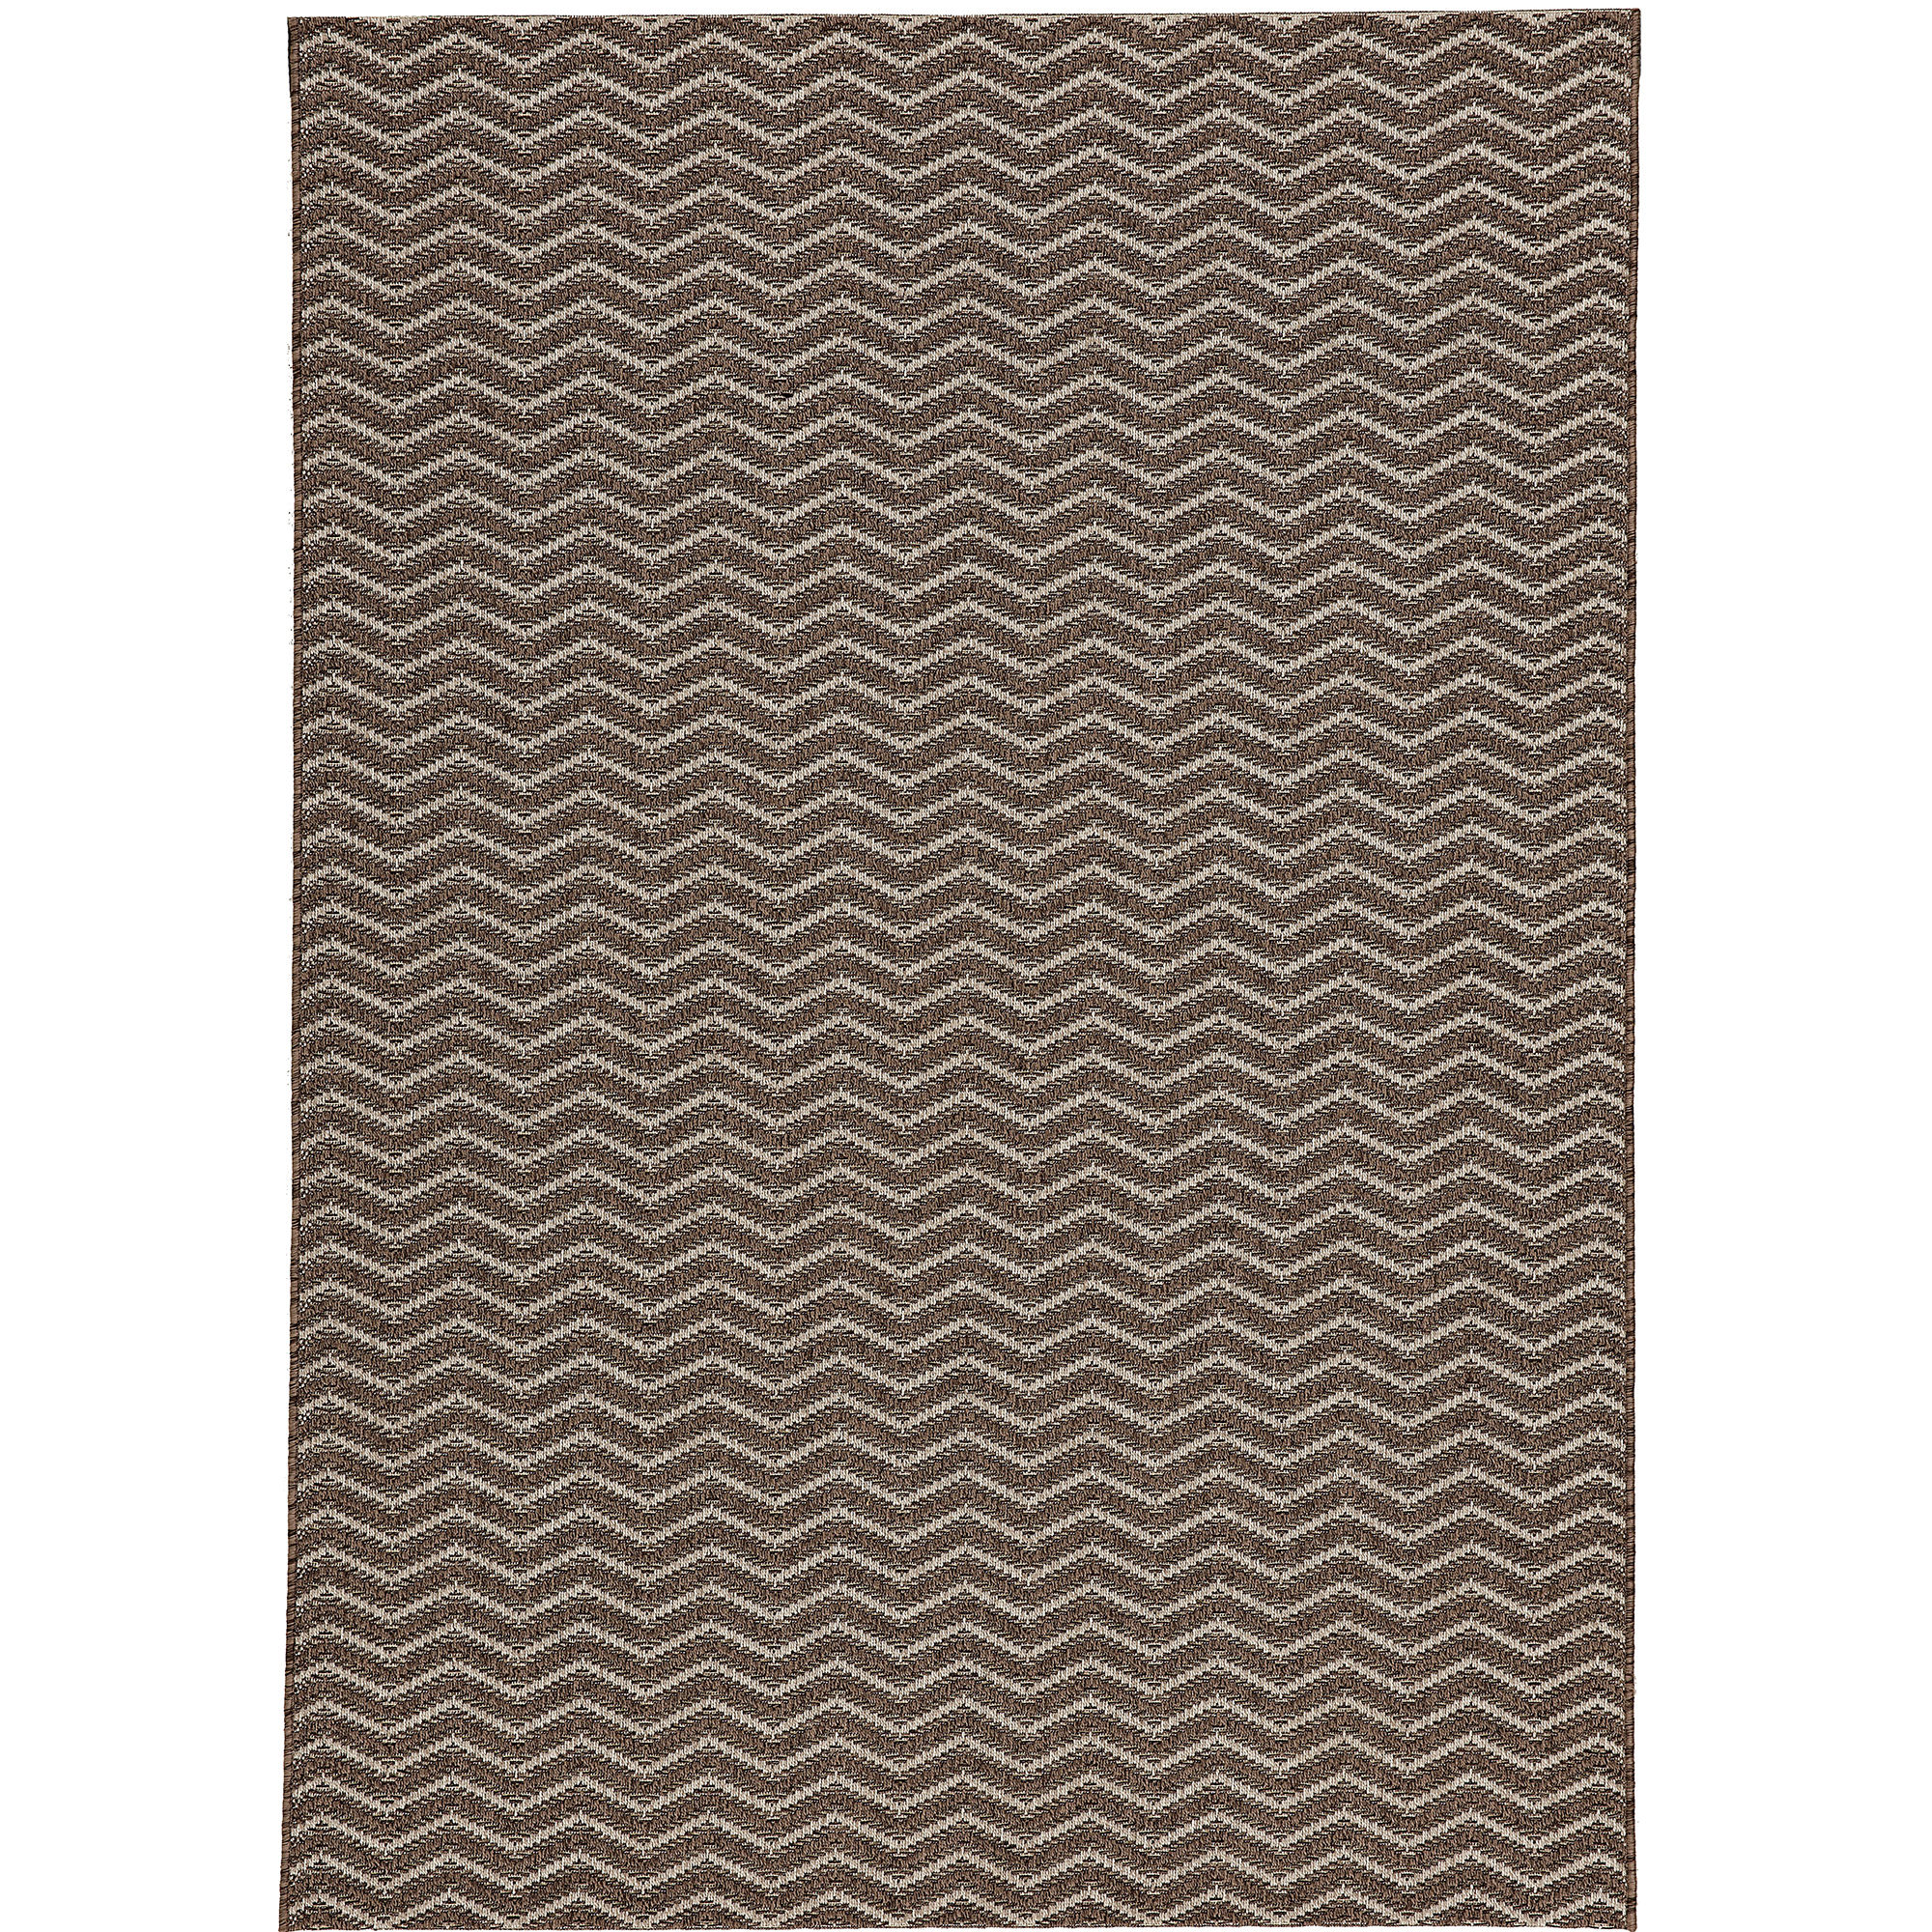 Outdoor Sisal Rugs Costco Search